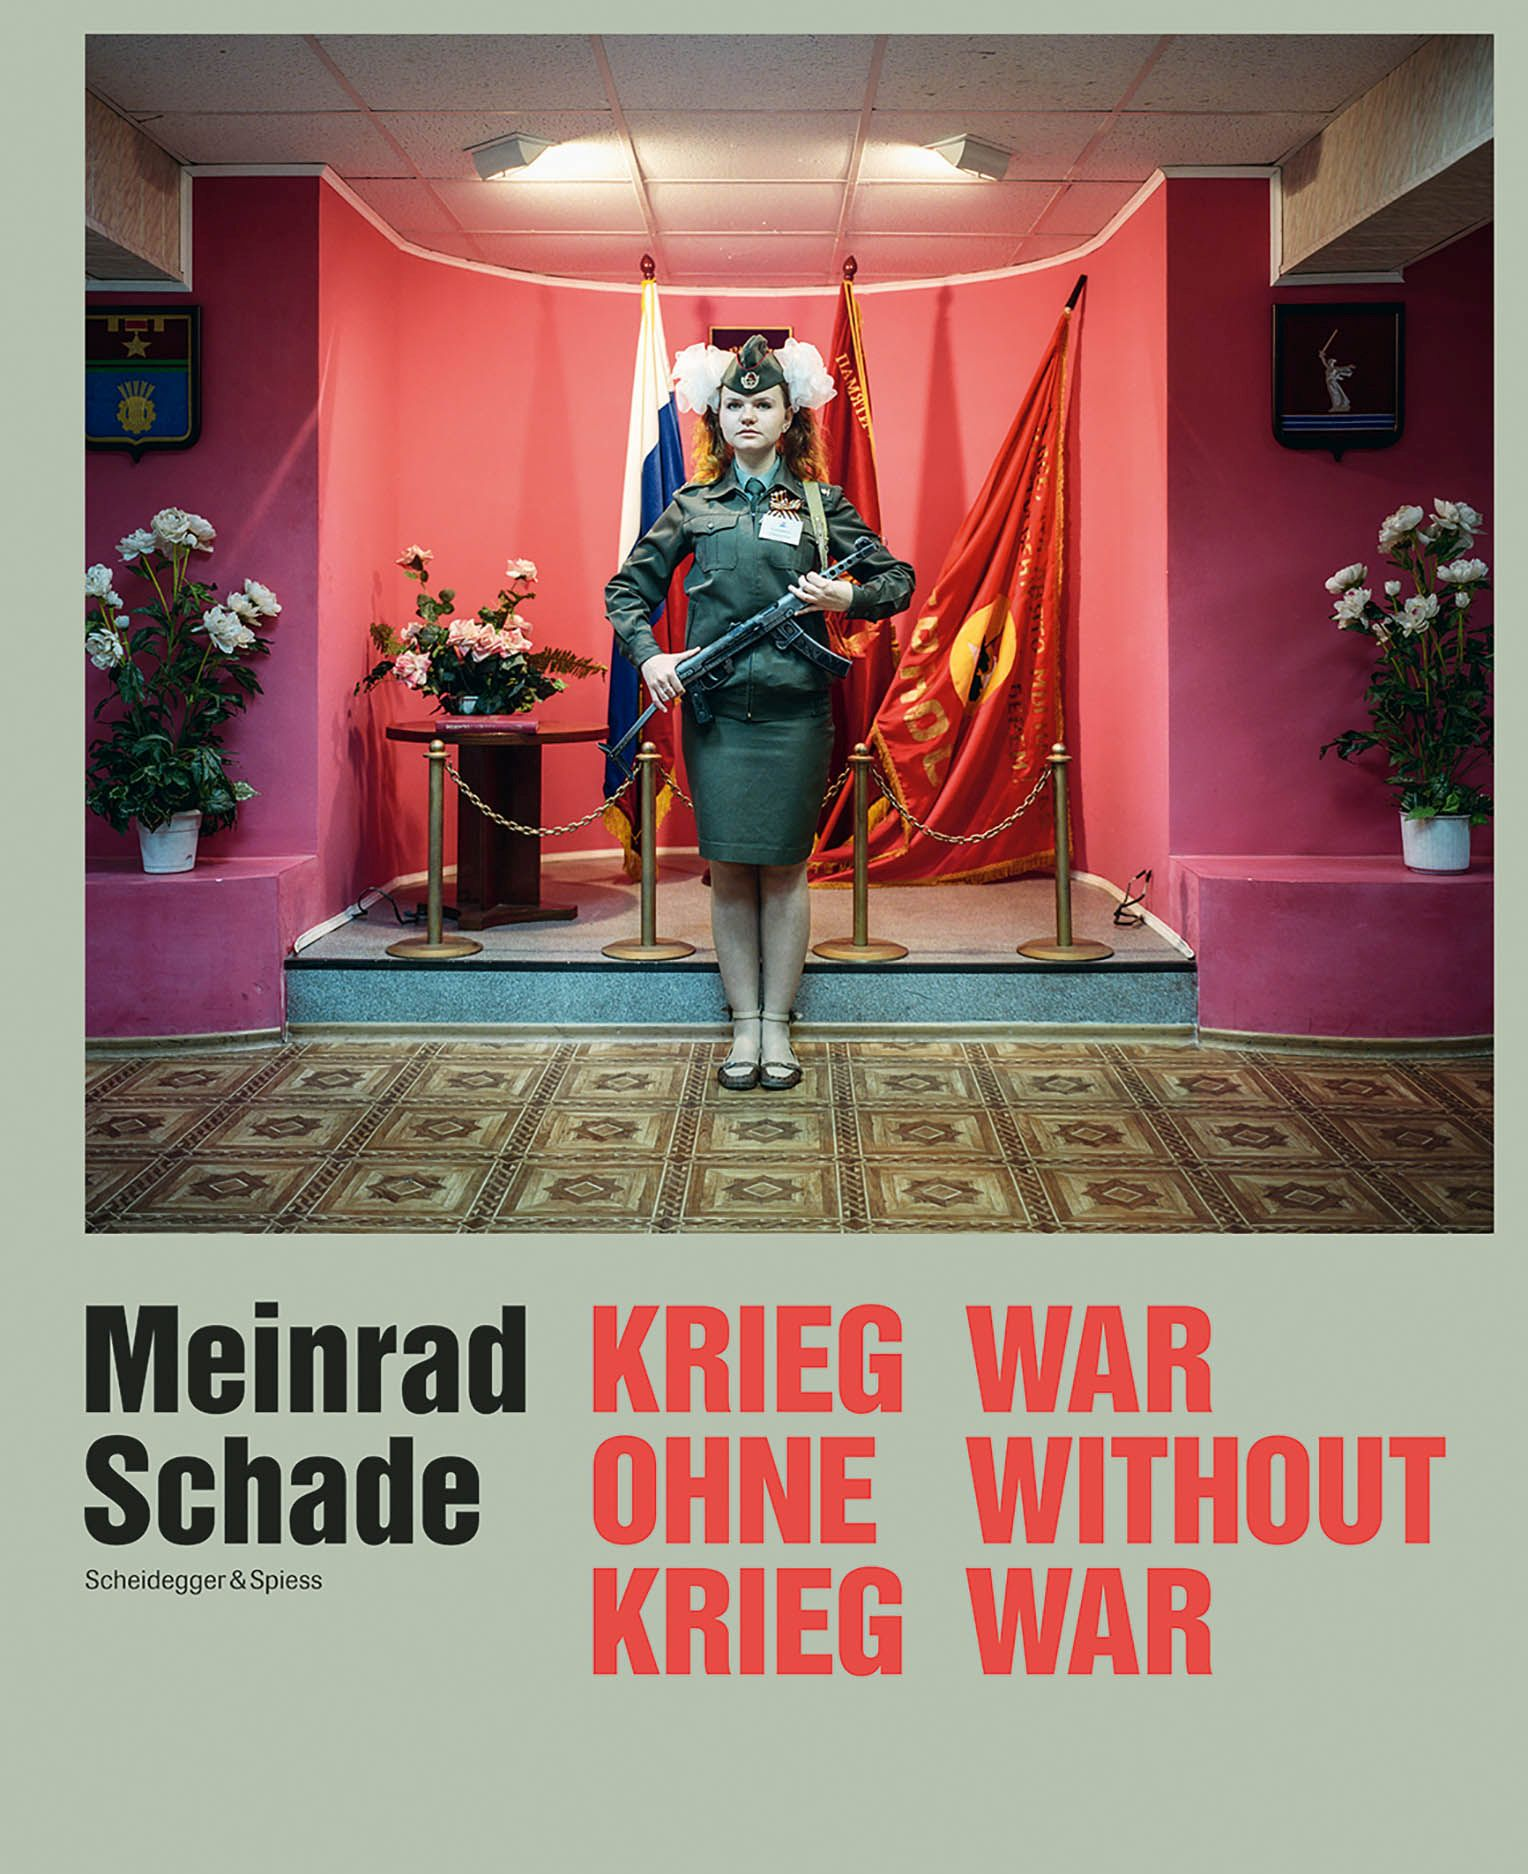 Meinrad Schade - War Without War: Photographs of the Former Soviet Union